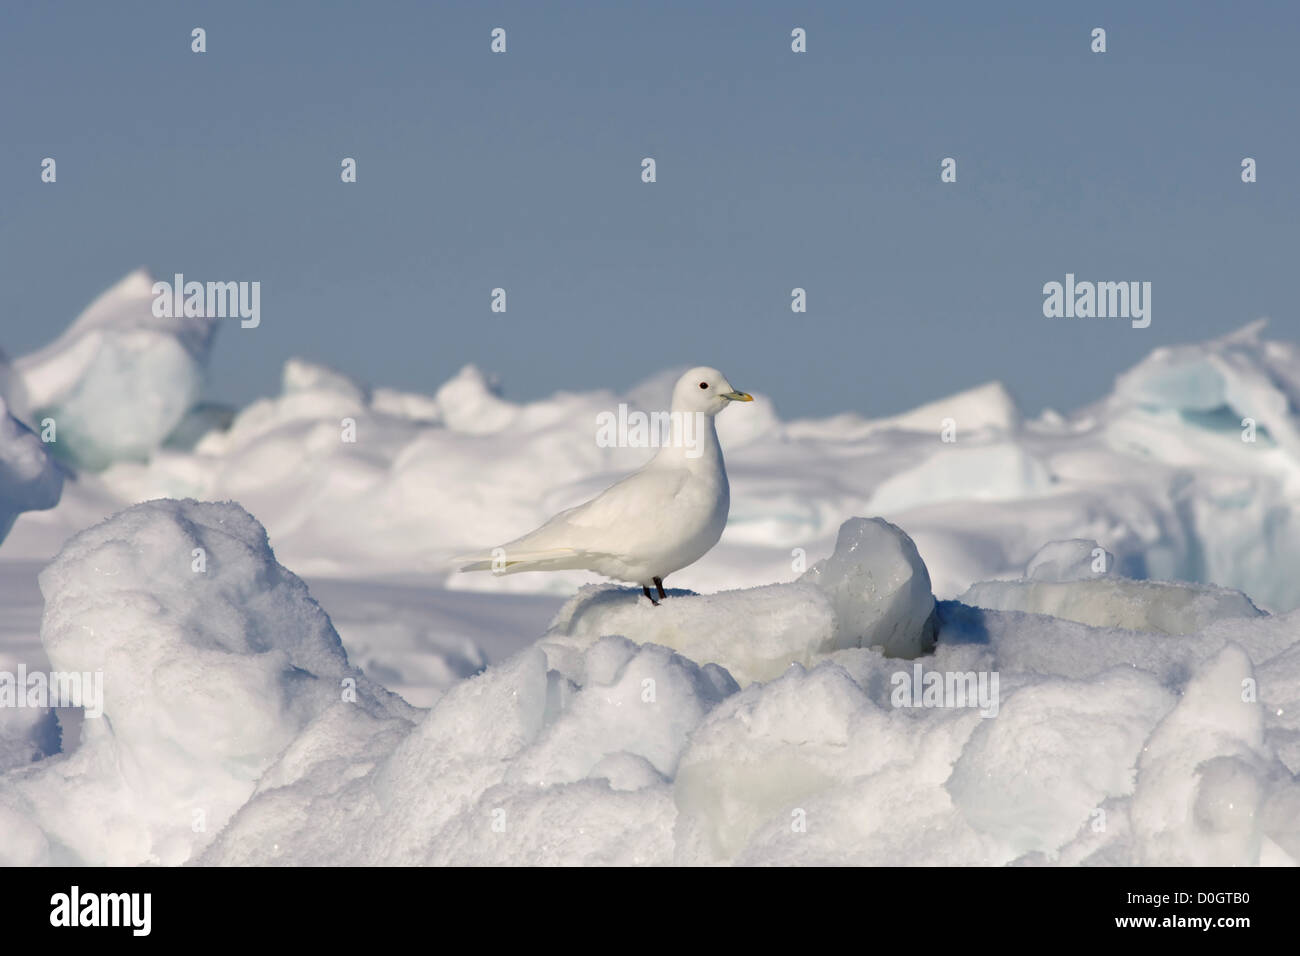 Endangered Ivory Gull on the Pack Ice - Stock Image